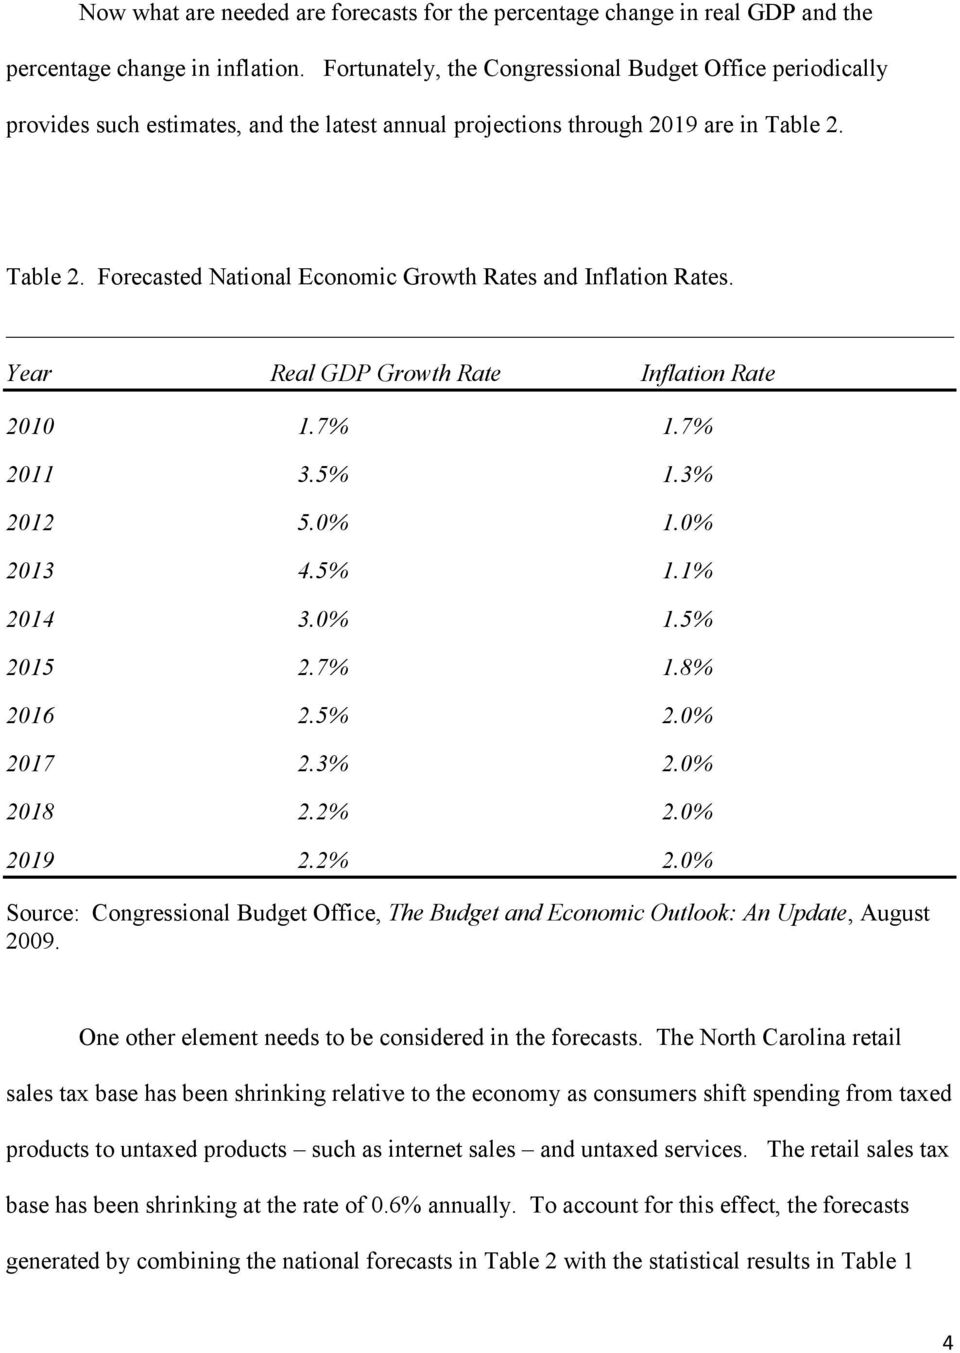 Table 2. Forecasted National Economic Growth Rates and Inflation Rates. Year Real GDP Growth Rate Inflation Rate 2010 1.7% 1.7% 2011 3.5% 1.3% 2012 5.0% 1.0% 2013 4.5% 1.1% 2014 3.0% 1.5% 2015 2.7% 1.8% 2016 2.